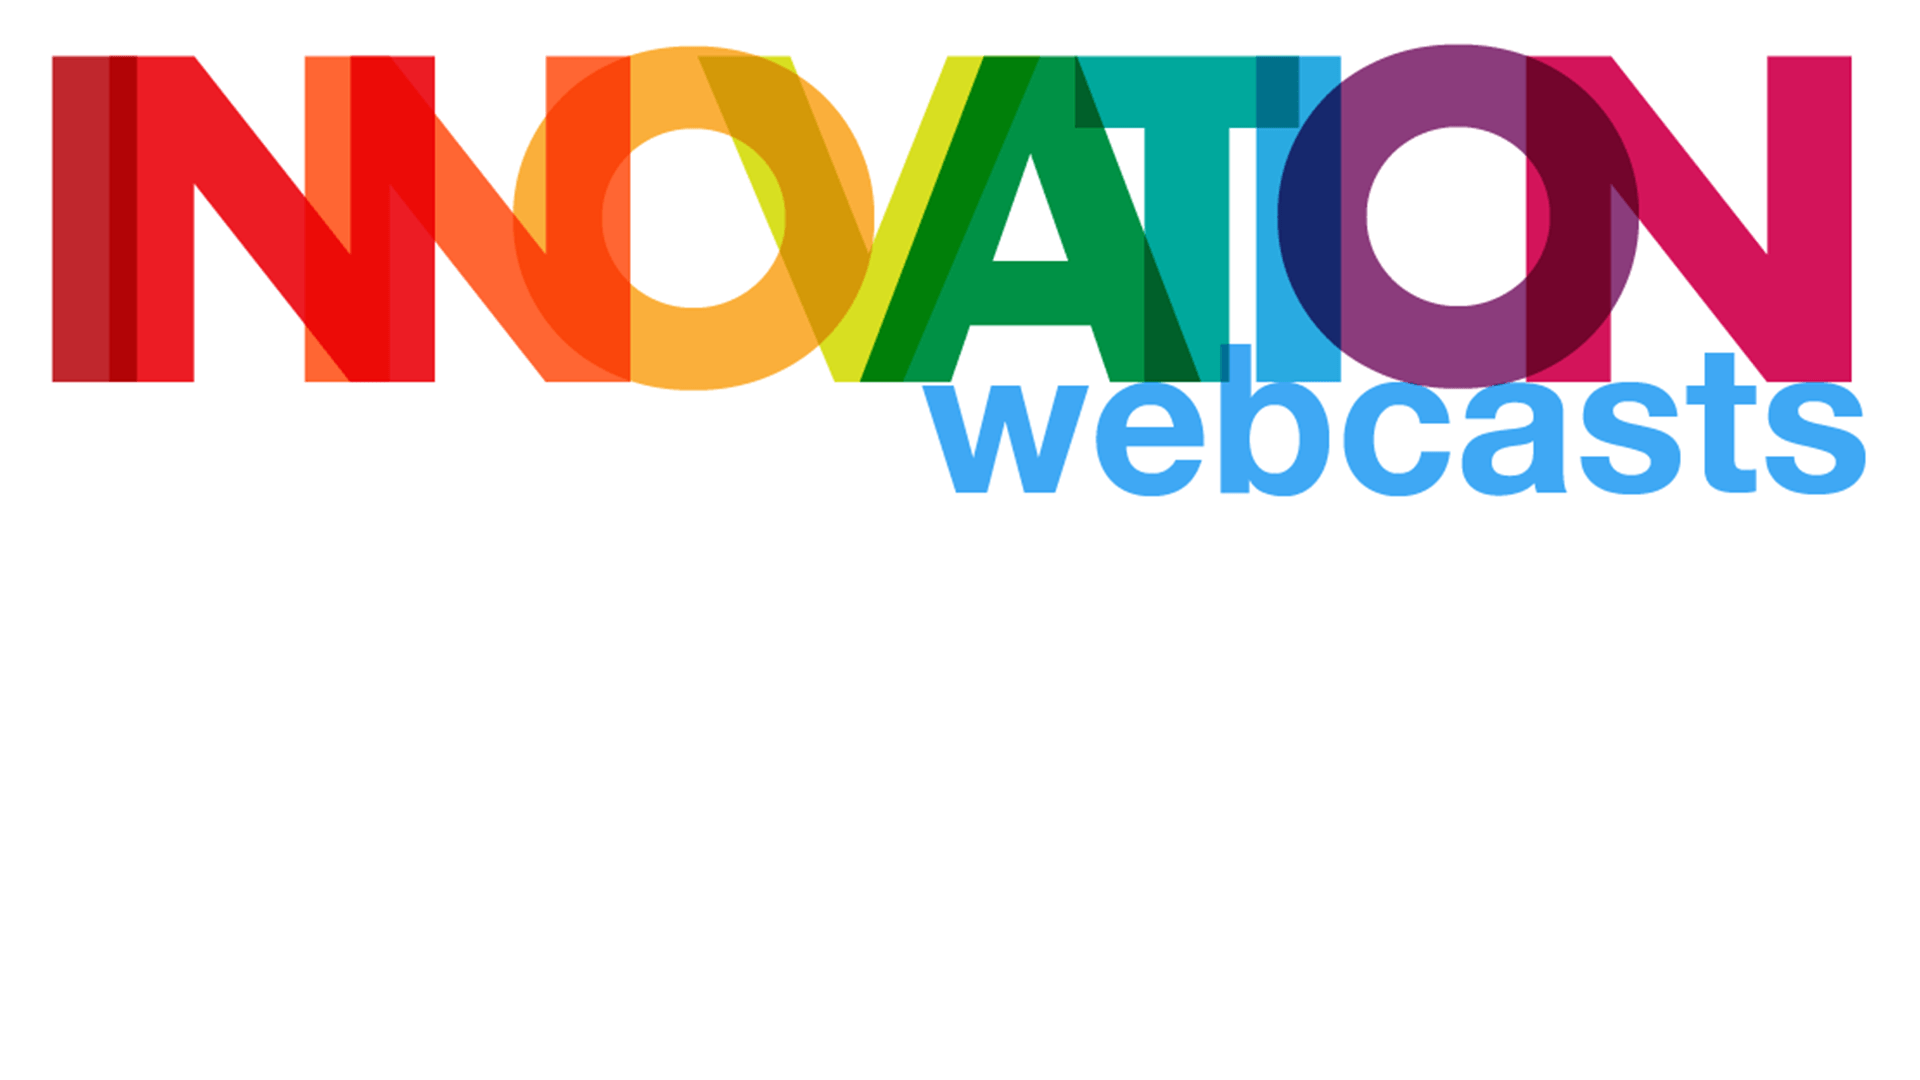 Innovation Webcasts